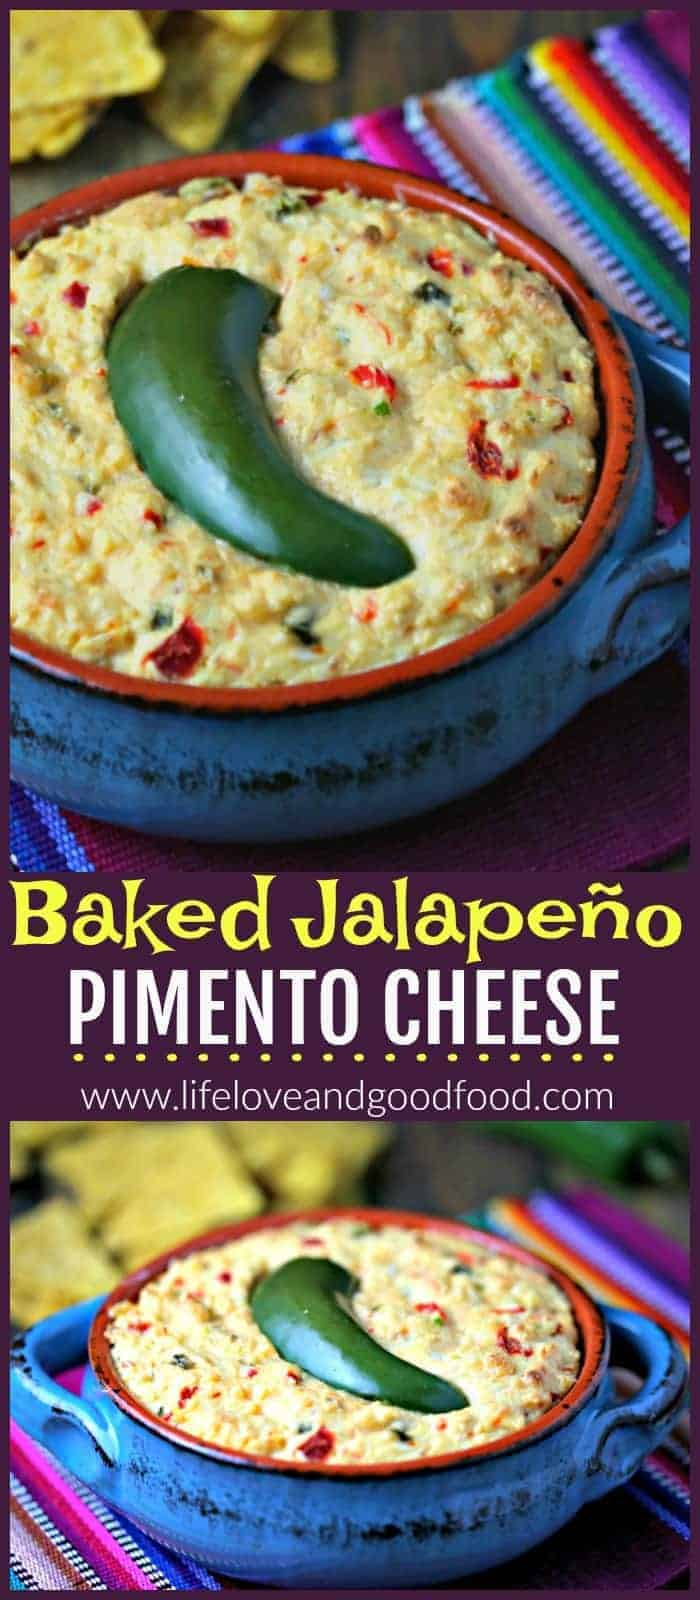 Baked Jalapeño Pimento Cheese | Life, Love, and Good Food